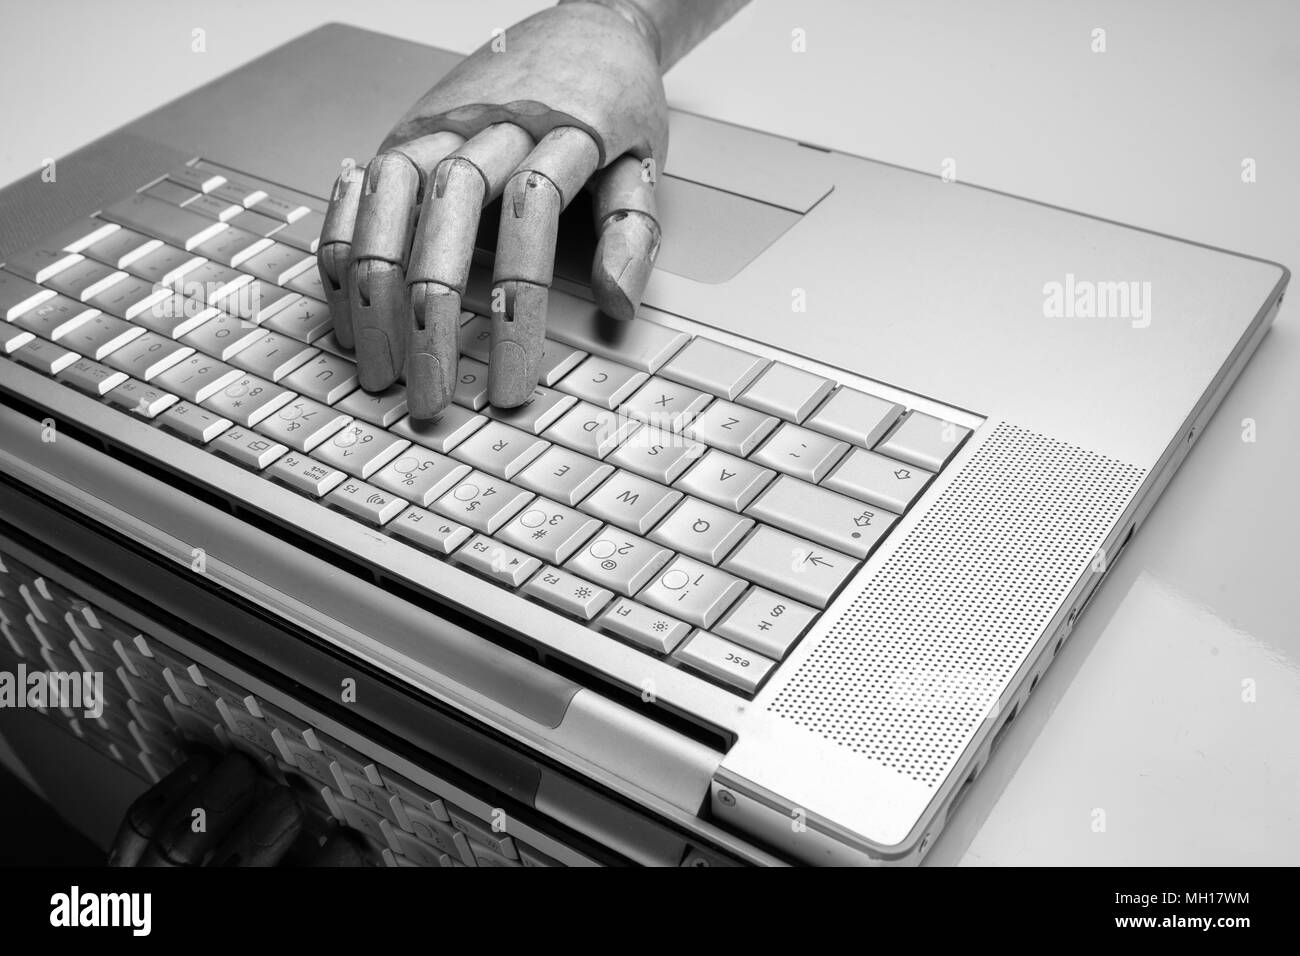 Futuristic robot hand typing and working with laptop keyboard. Mechanical arm with computer - Stock Image